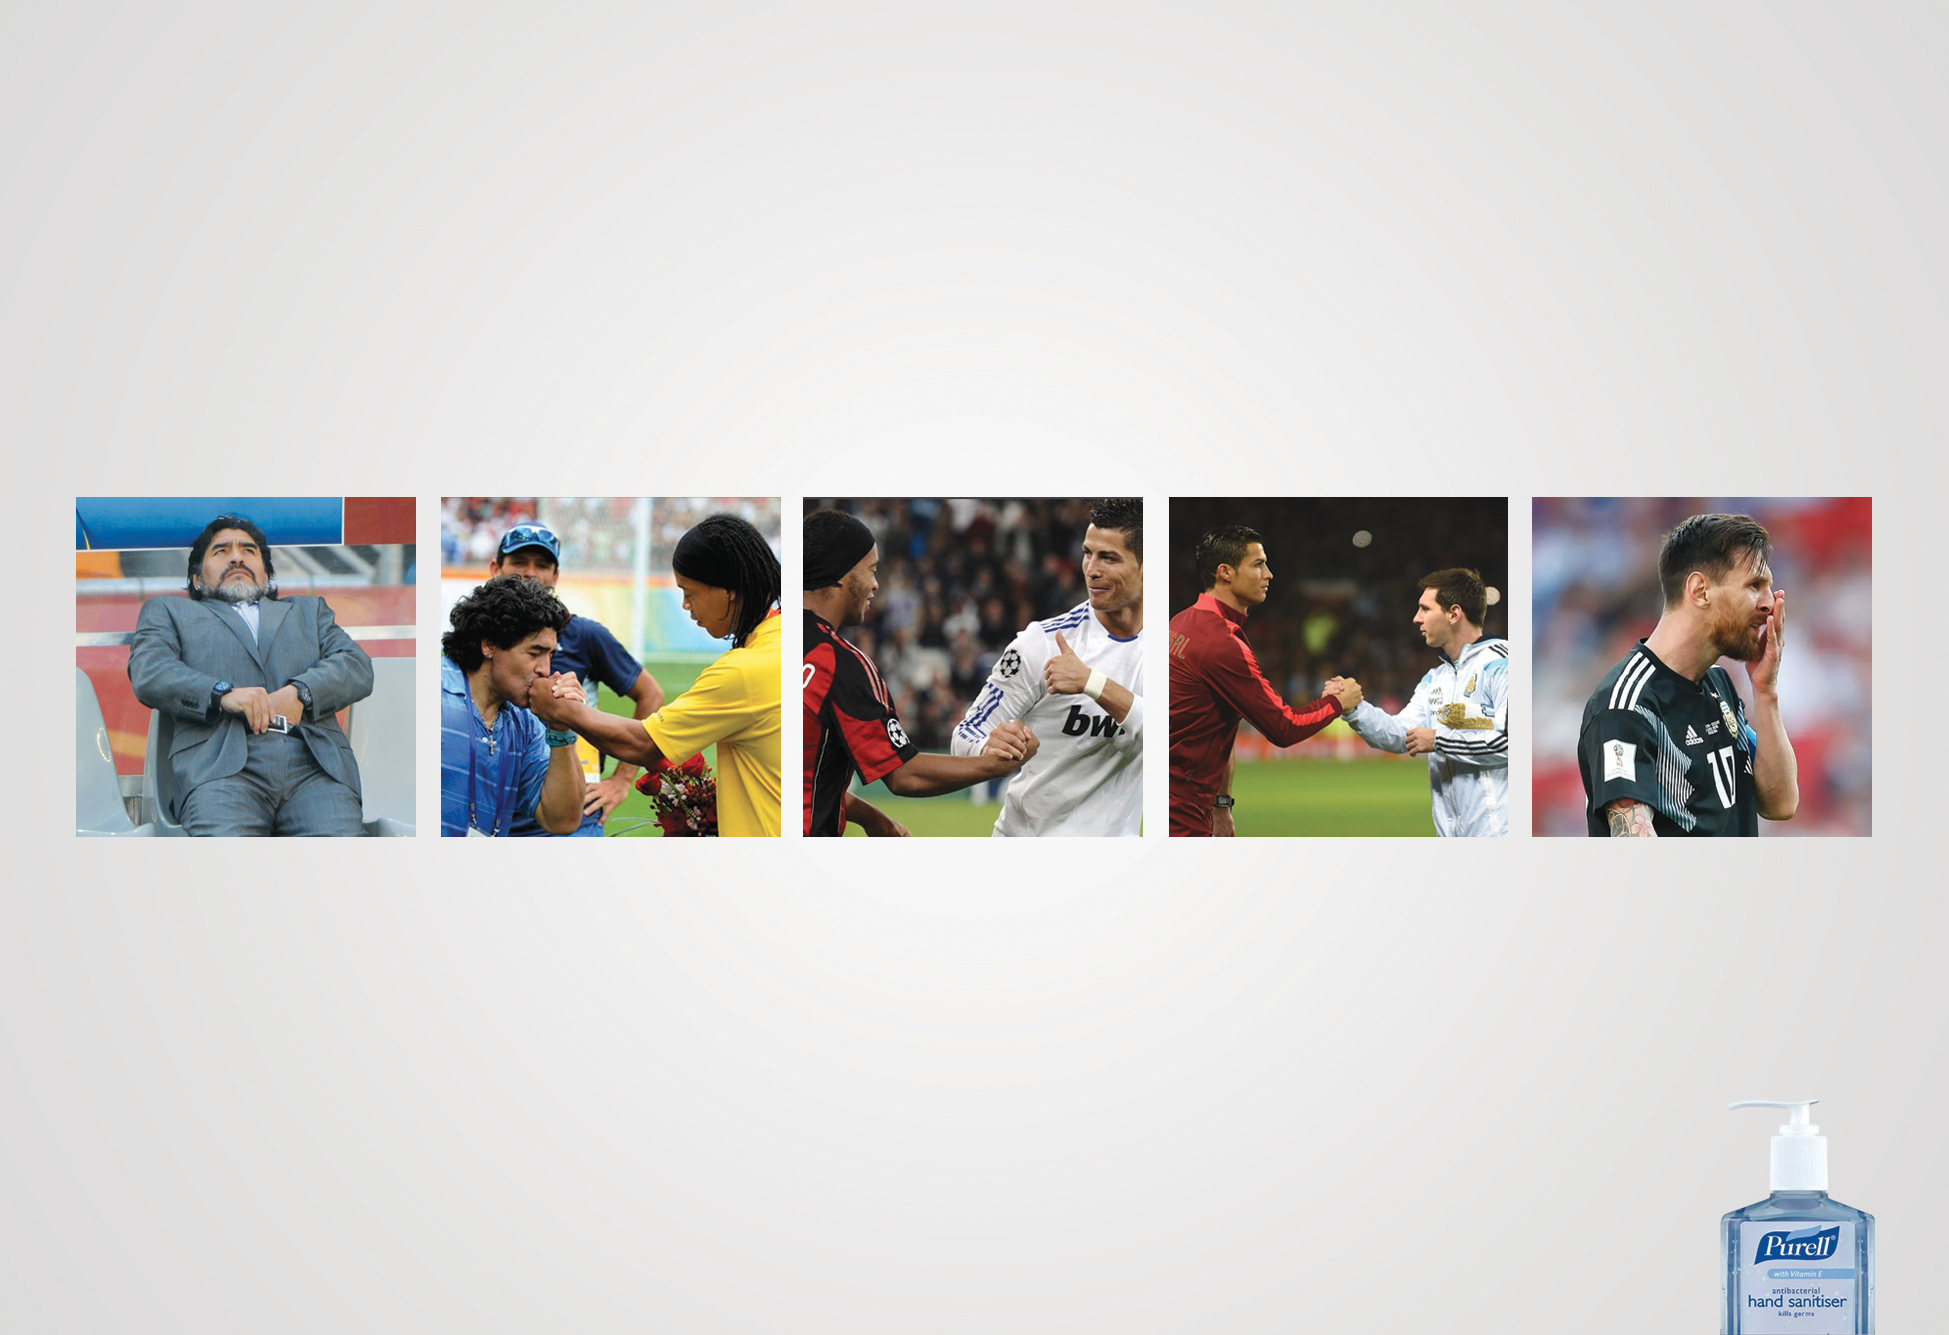 Purell Hand Sanitiser: Dirty Hands (Maradona - Messi)